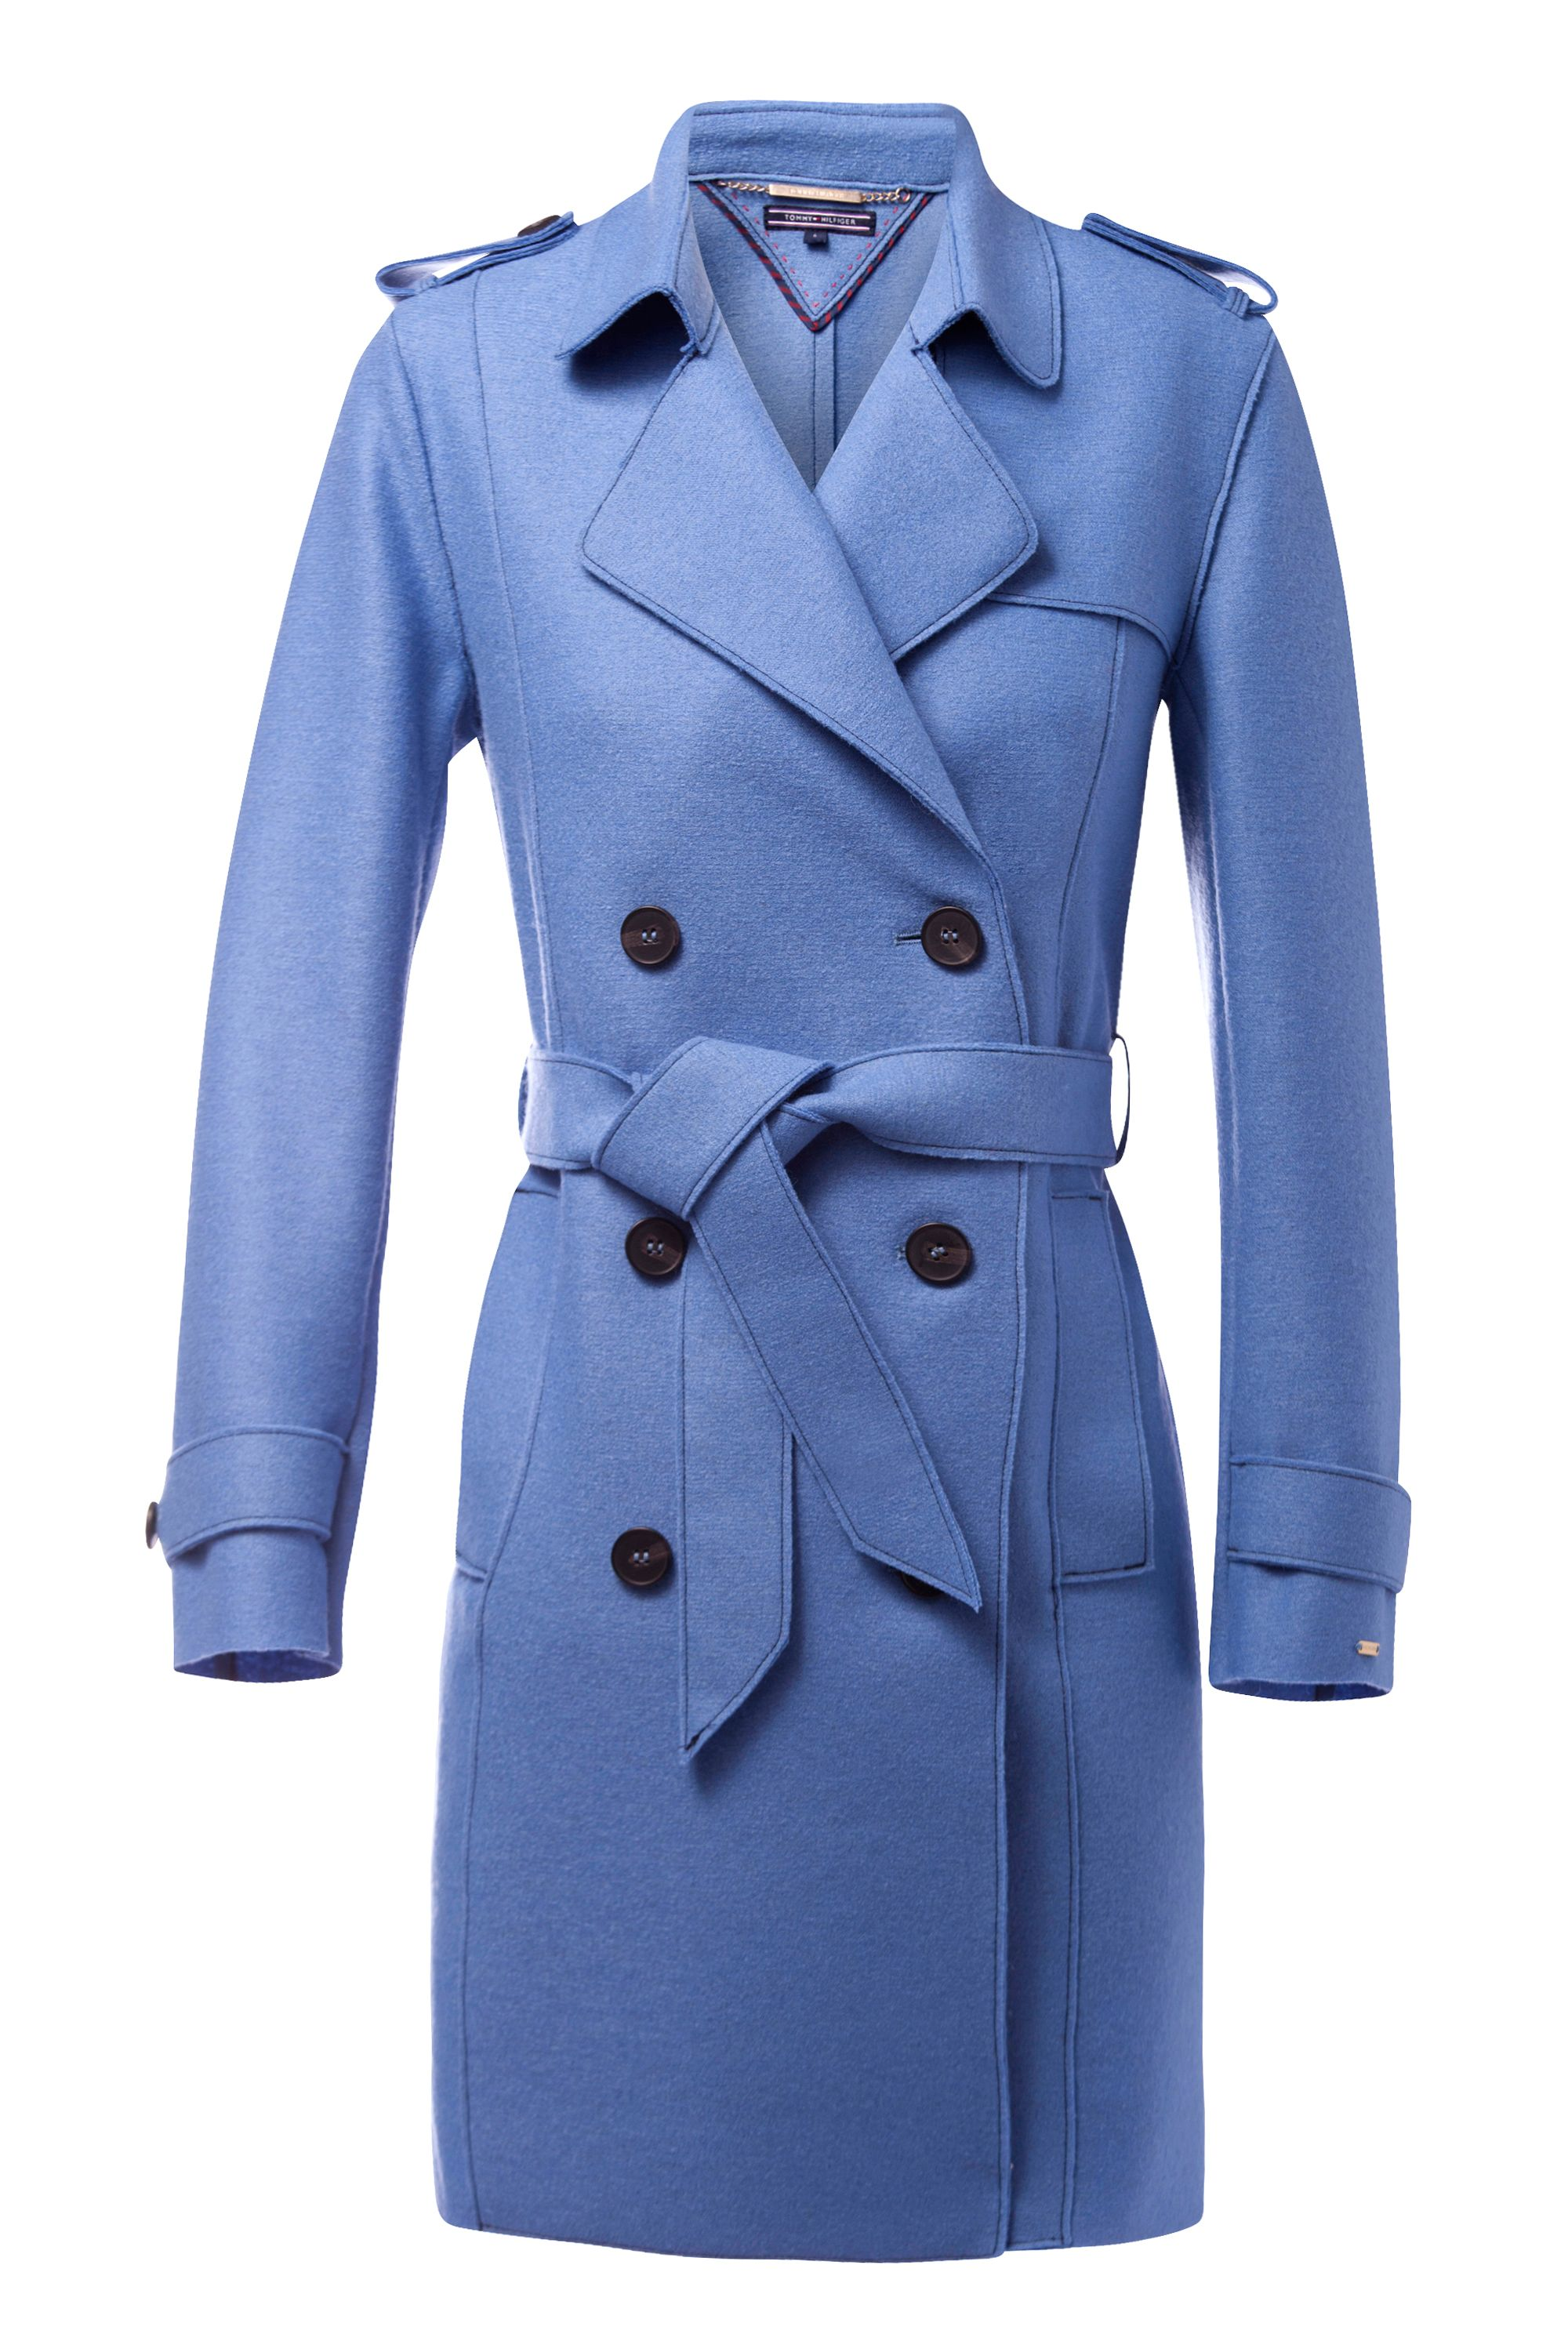 Tommy Hilfiger Beth Boiled Wool Trench Coat, Blue